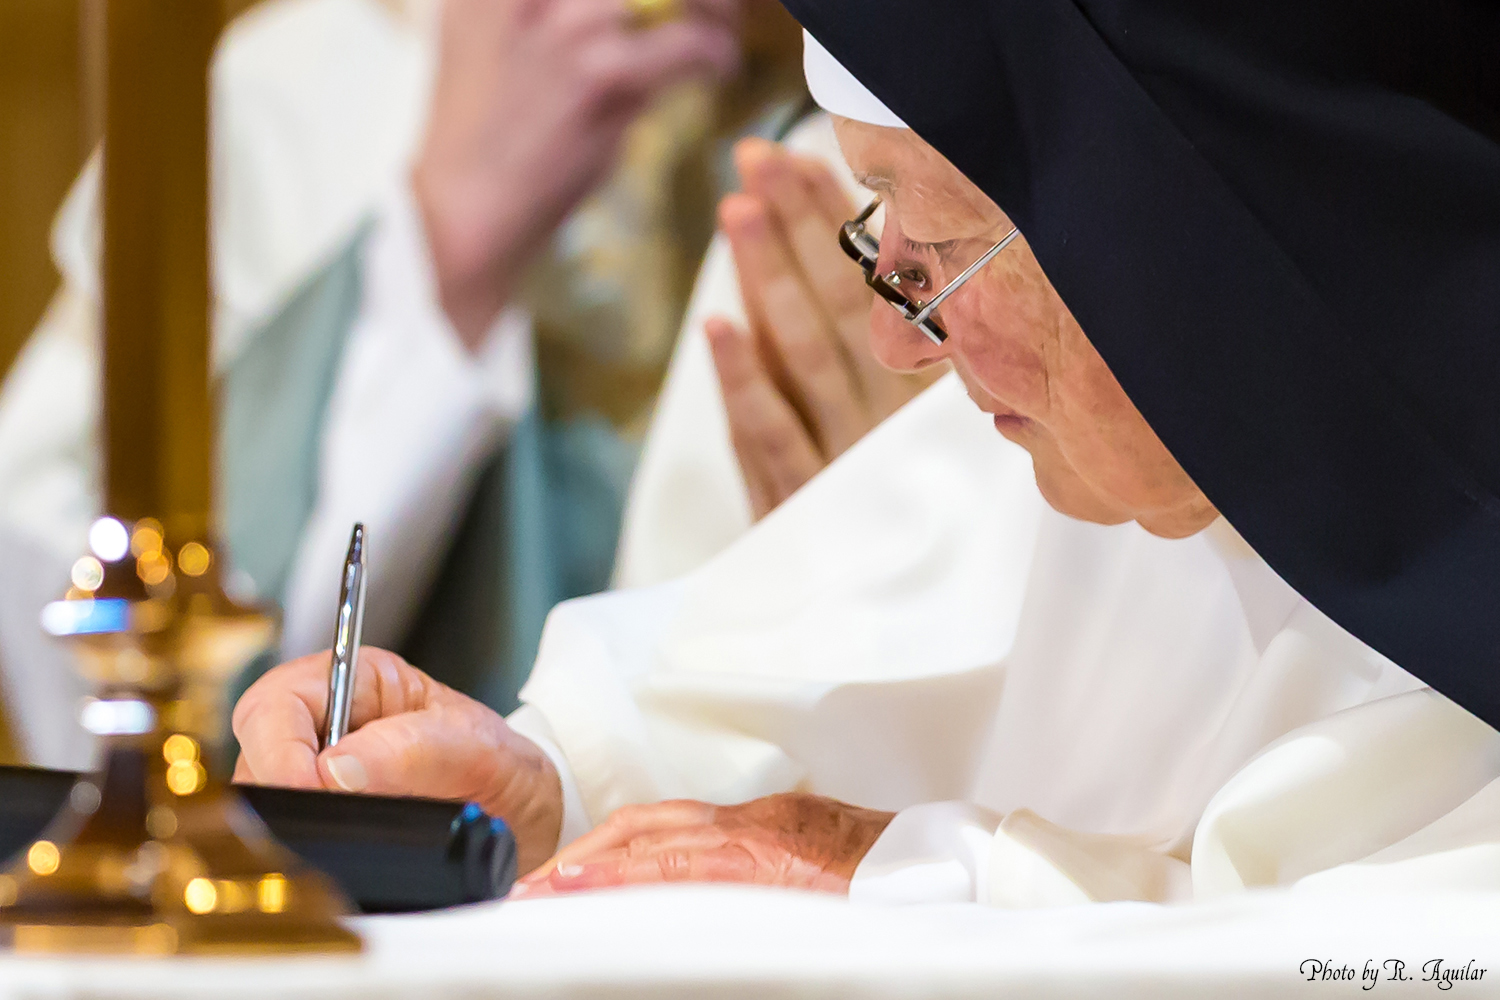 22 Prioress signing the formula of profession